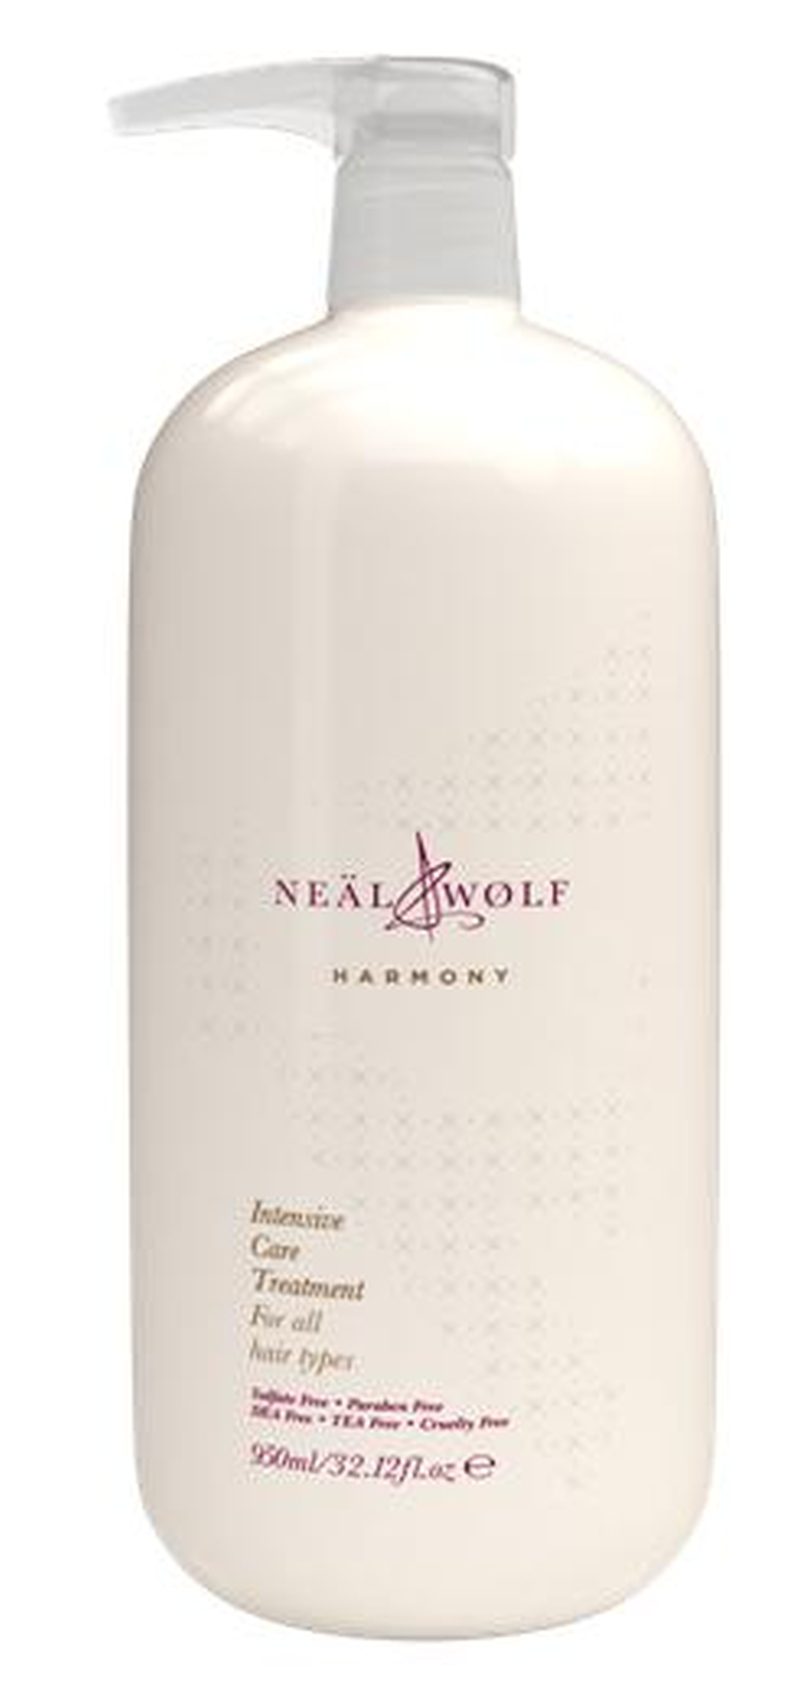 Neal and Wolf Harmony Intensive Care Treatment 950ml